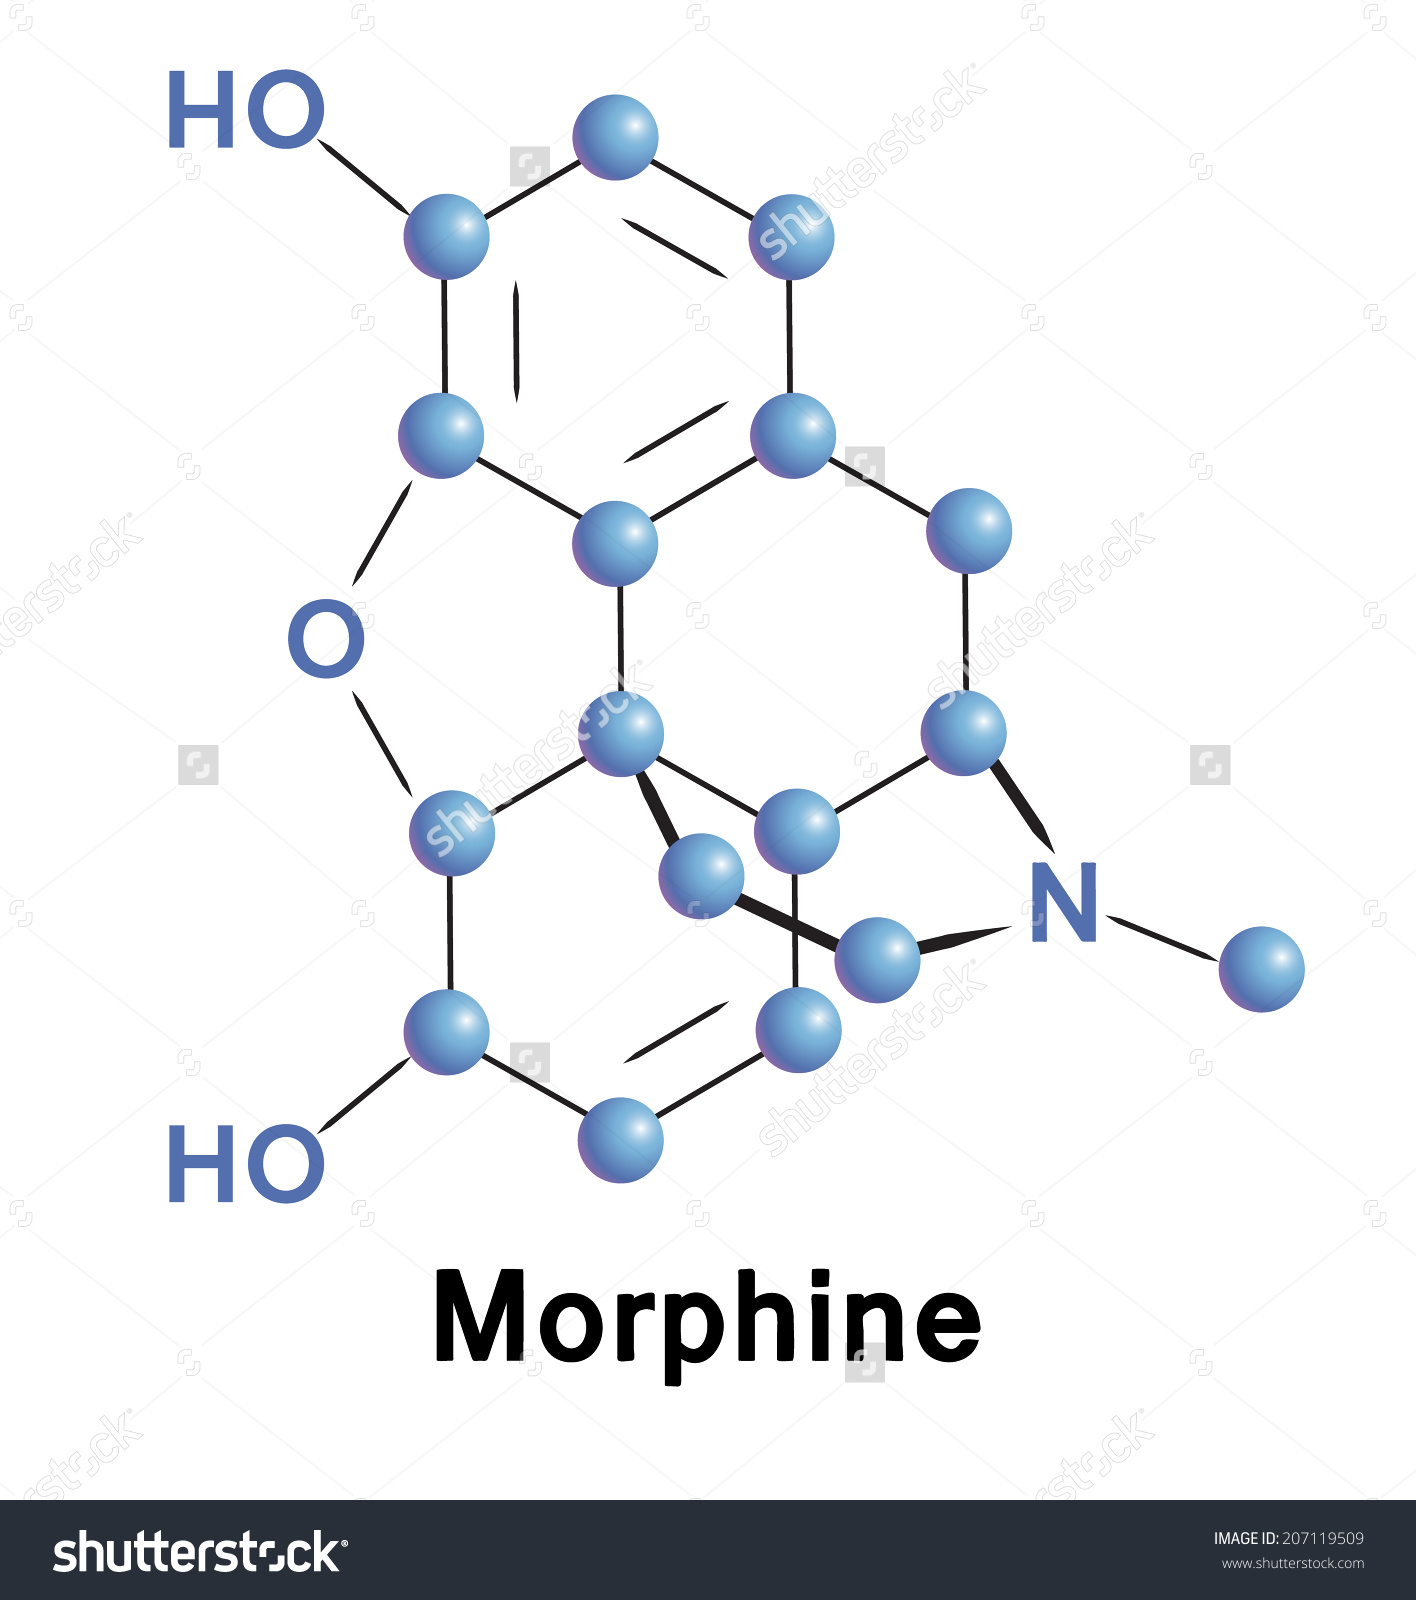 Morphine Chemical Compound Molecular Structure Vector Stock Vector.